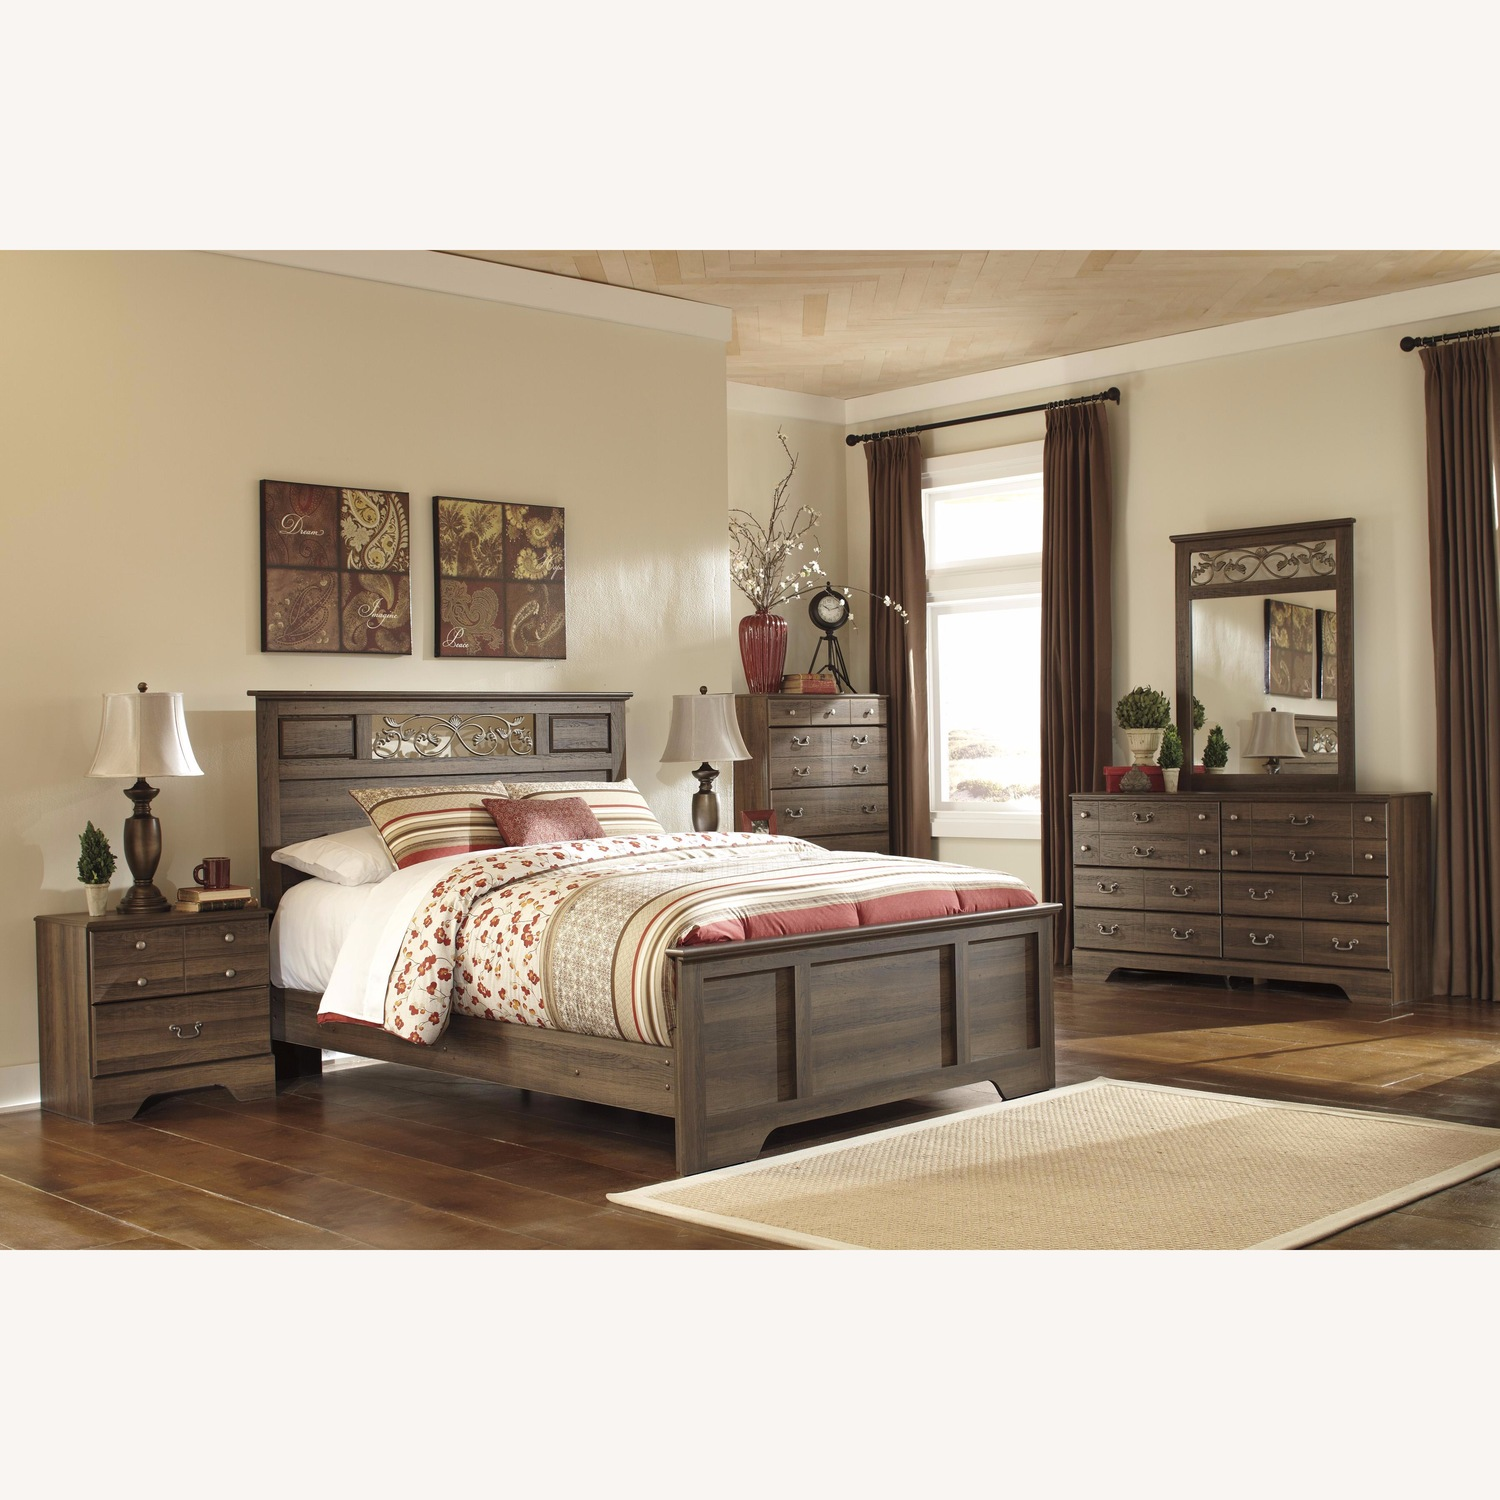 Ashley Allymore Queen Panel Bed - image-2